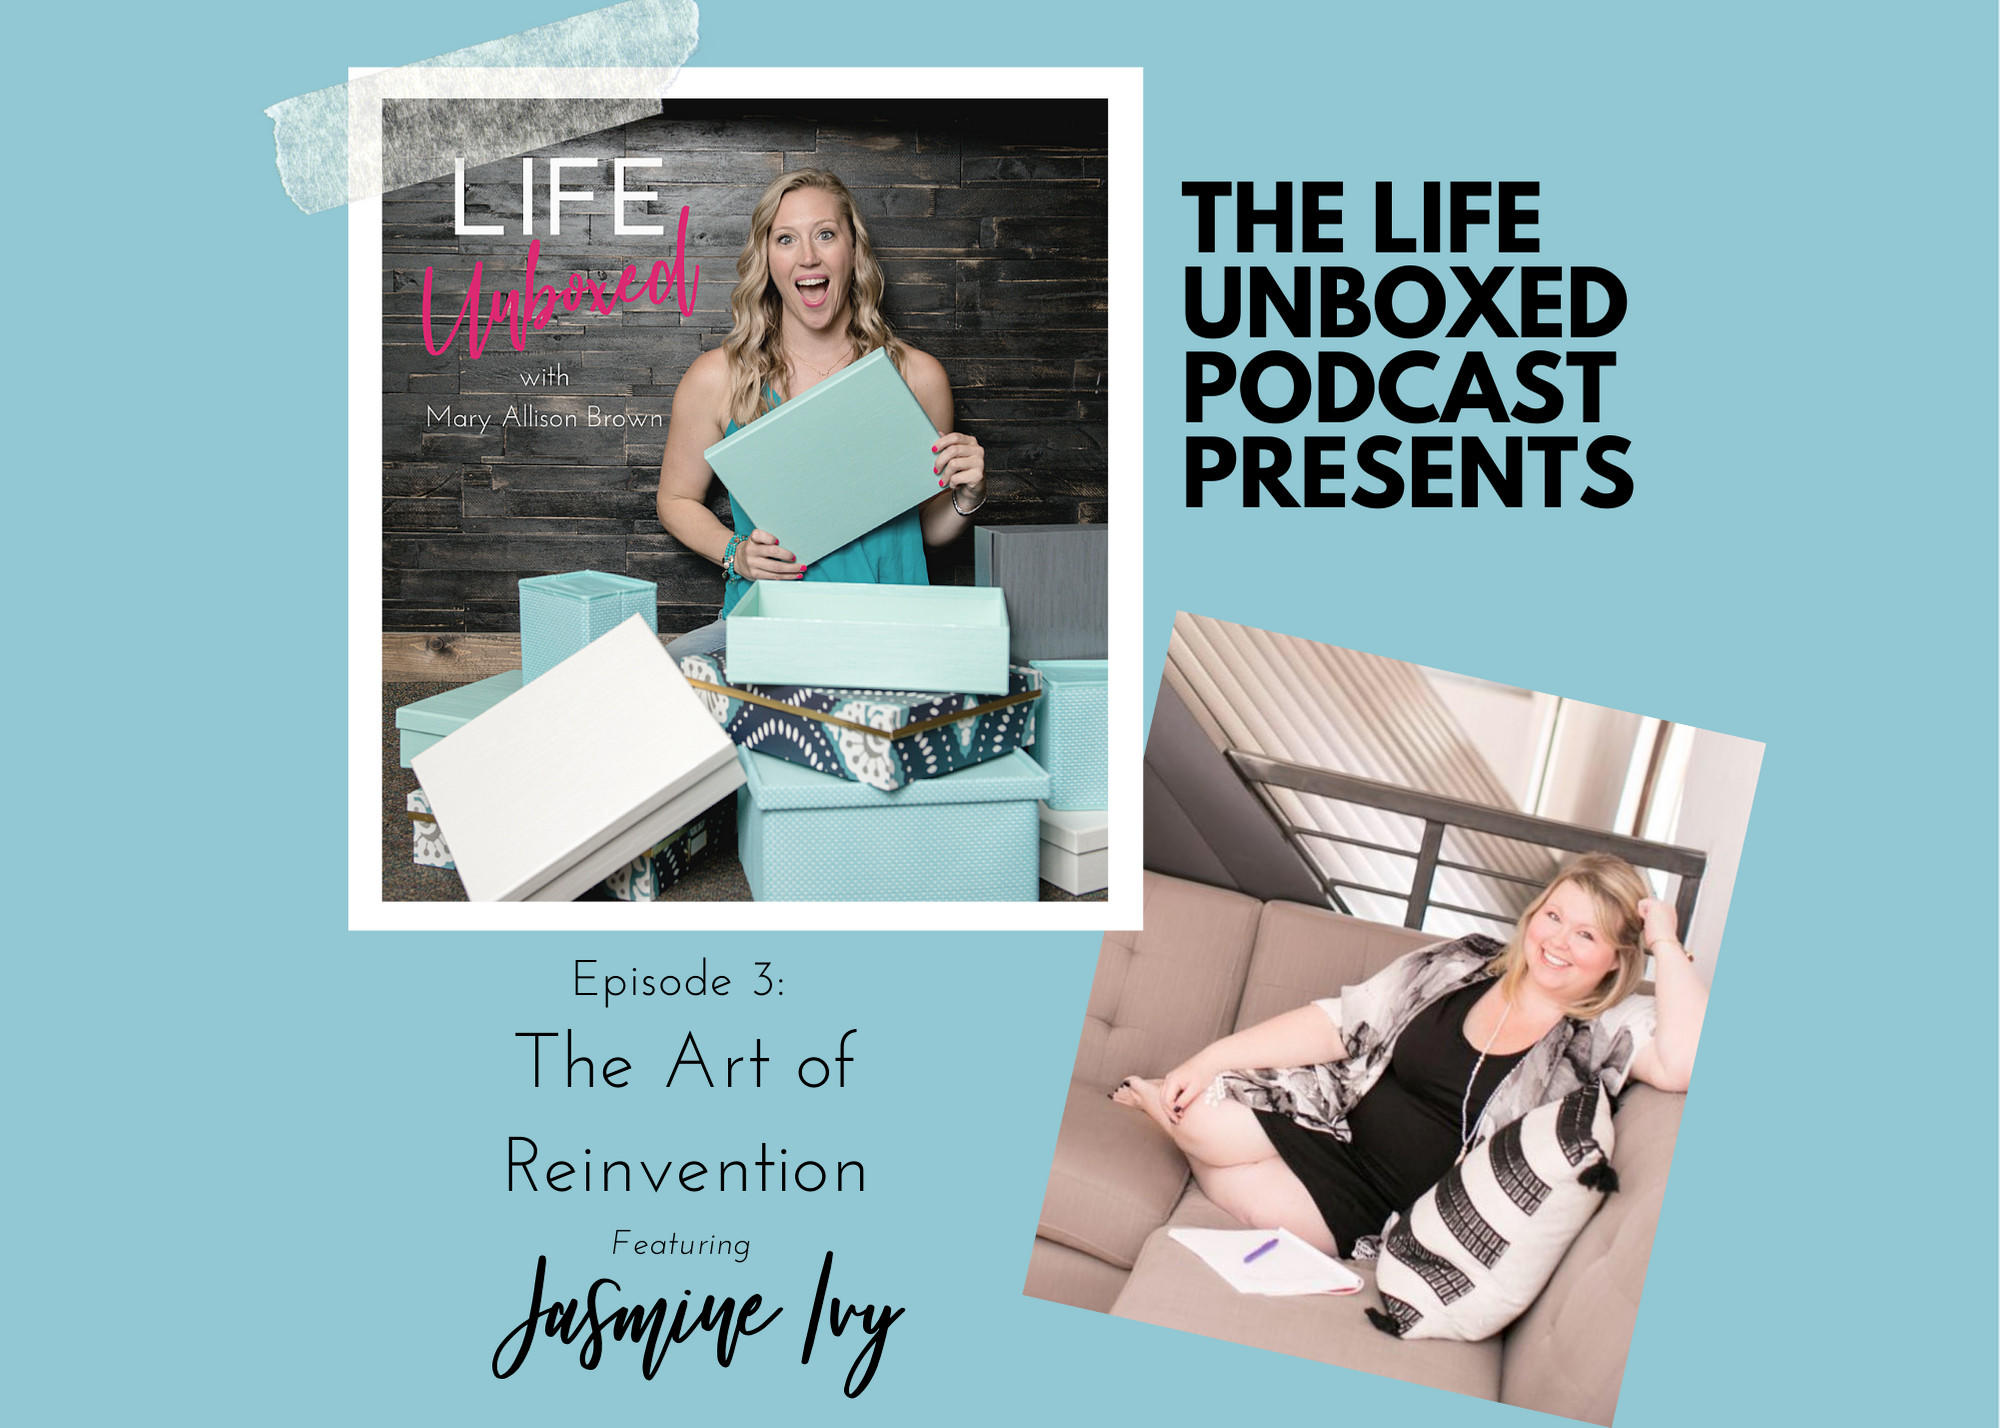 The Art of Reinvention with Jasmine Ivy